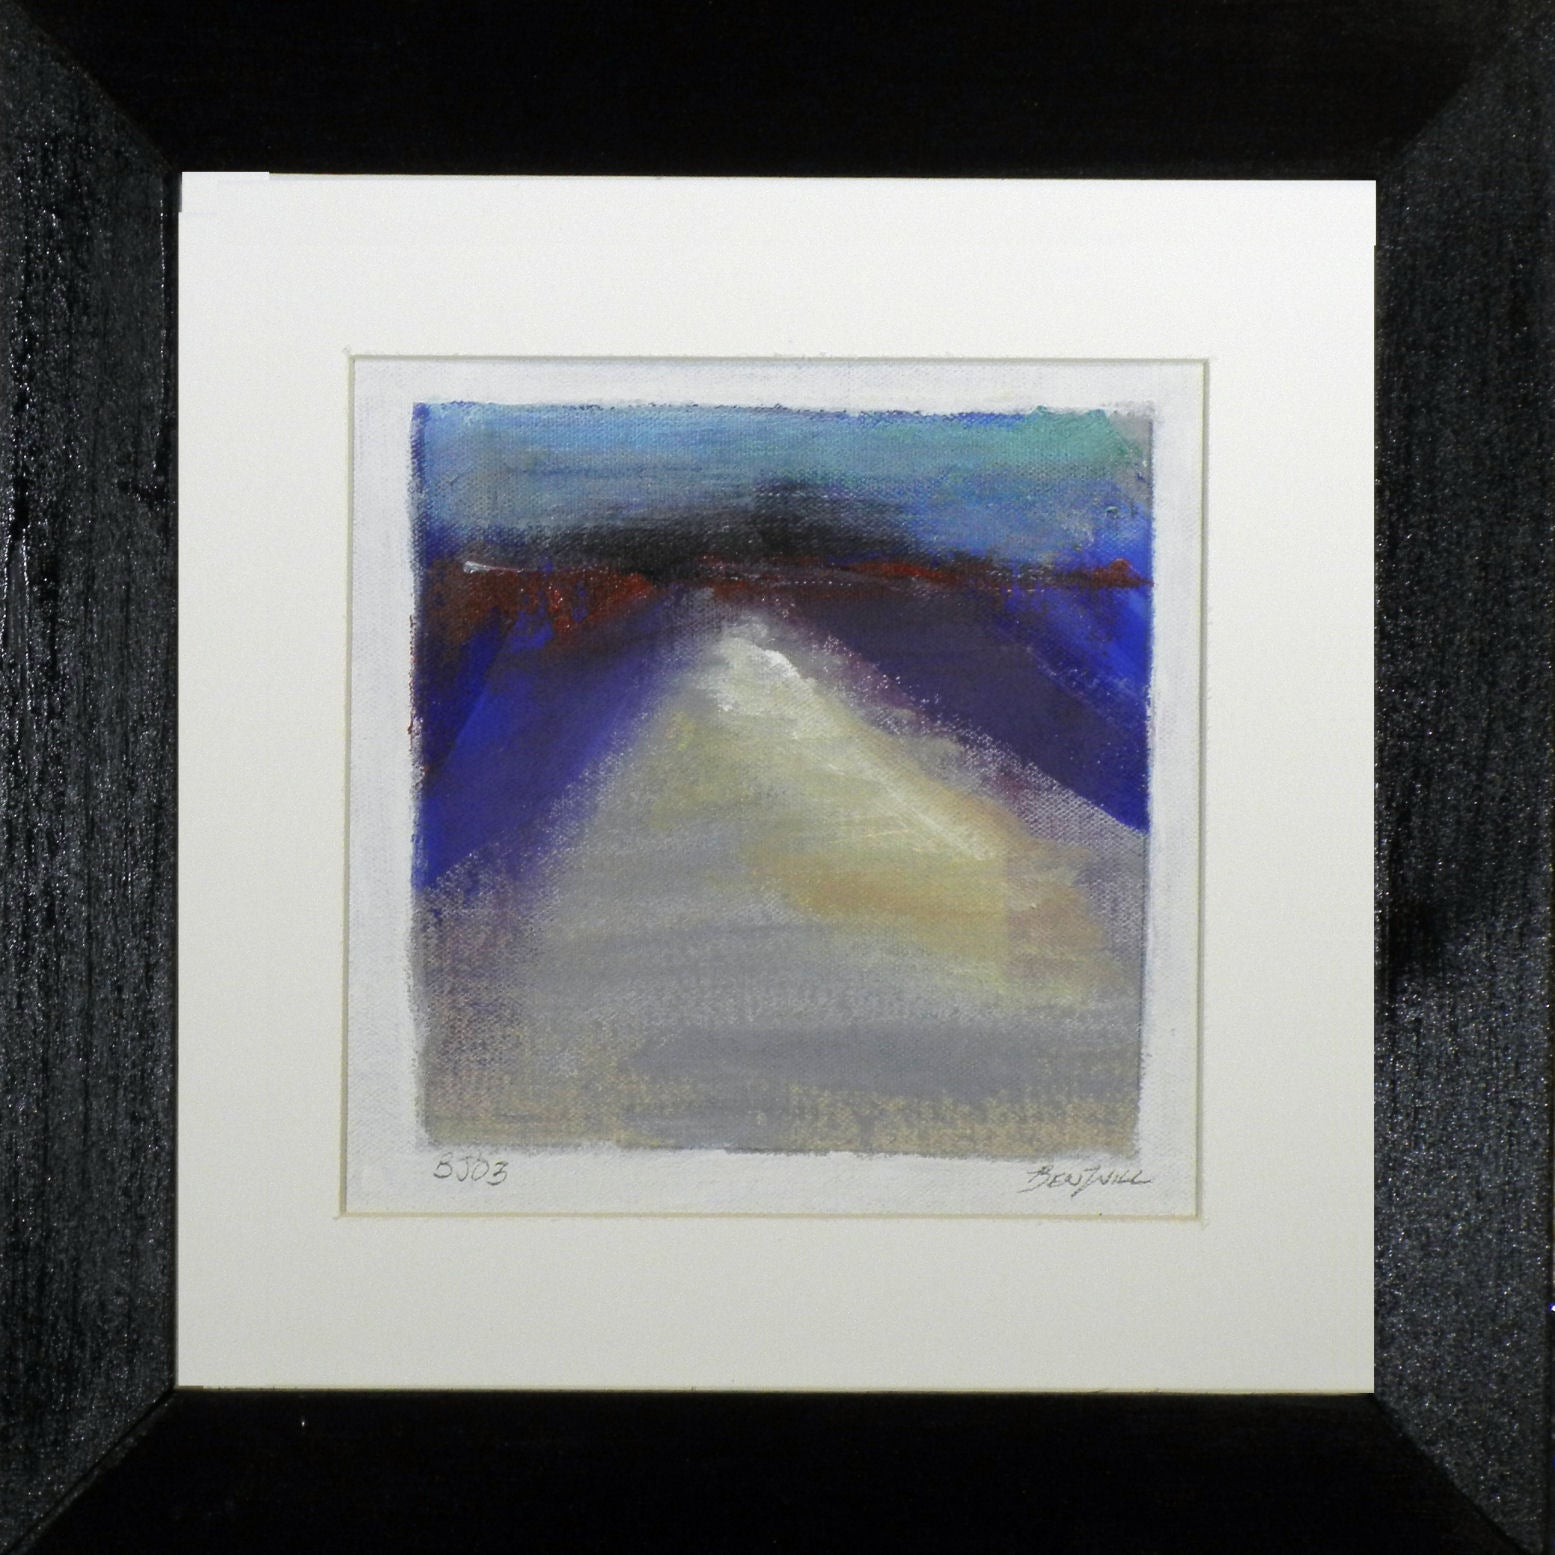 Framed Small Painting BJ03